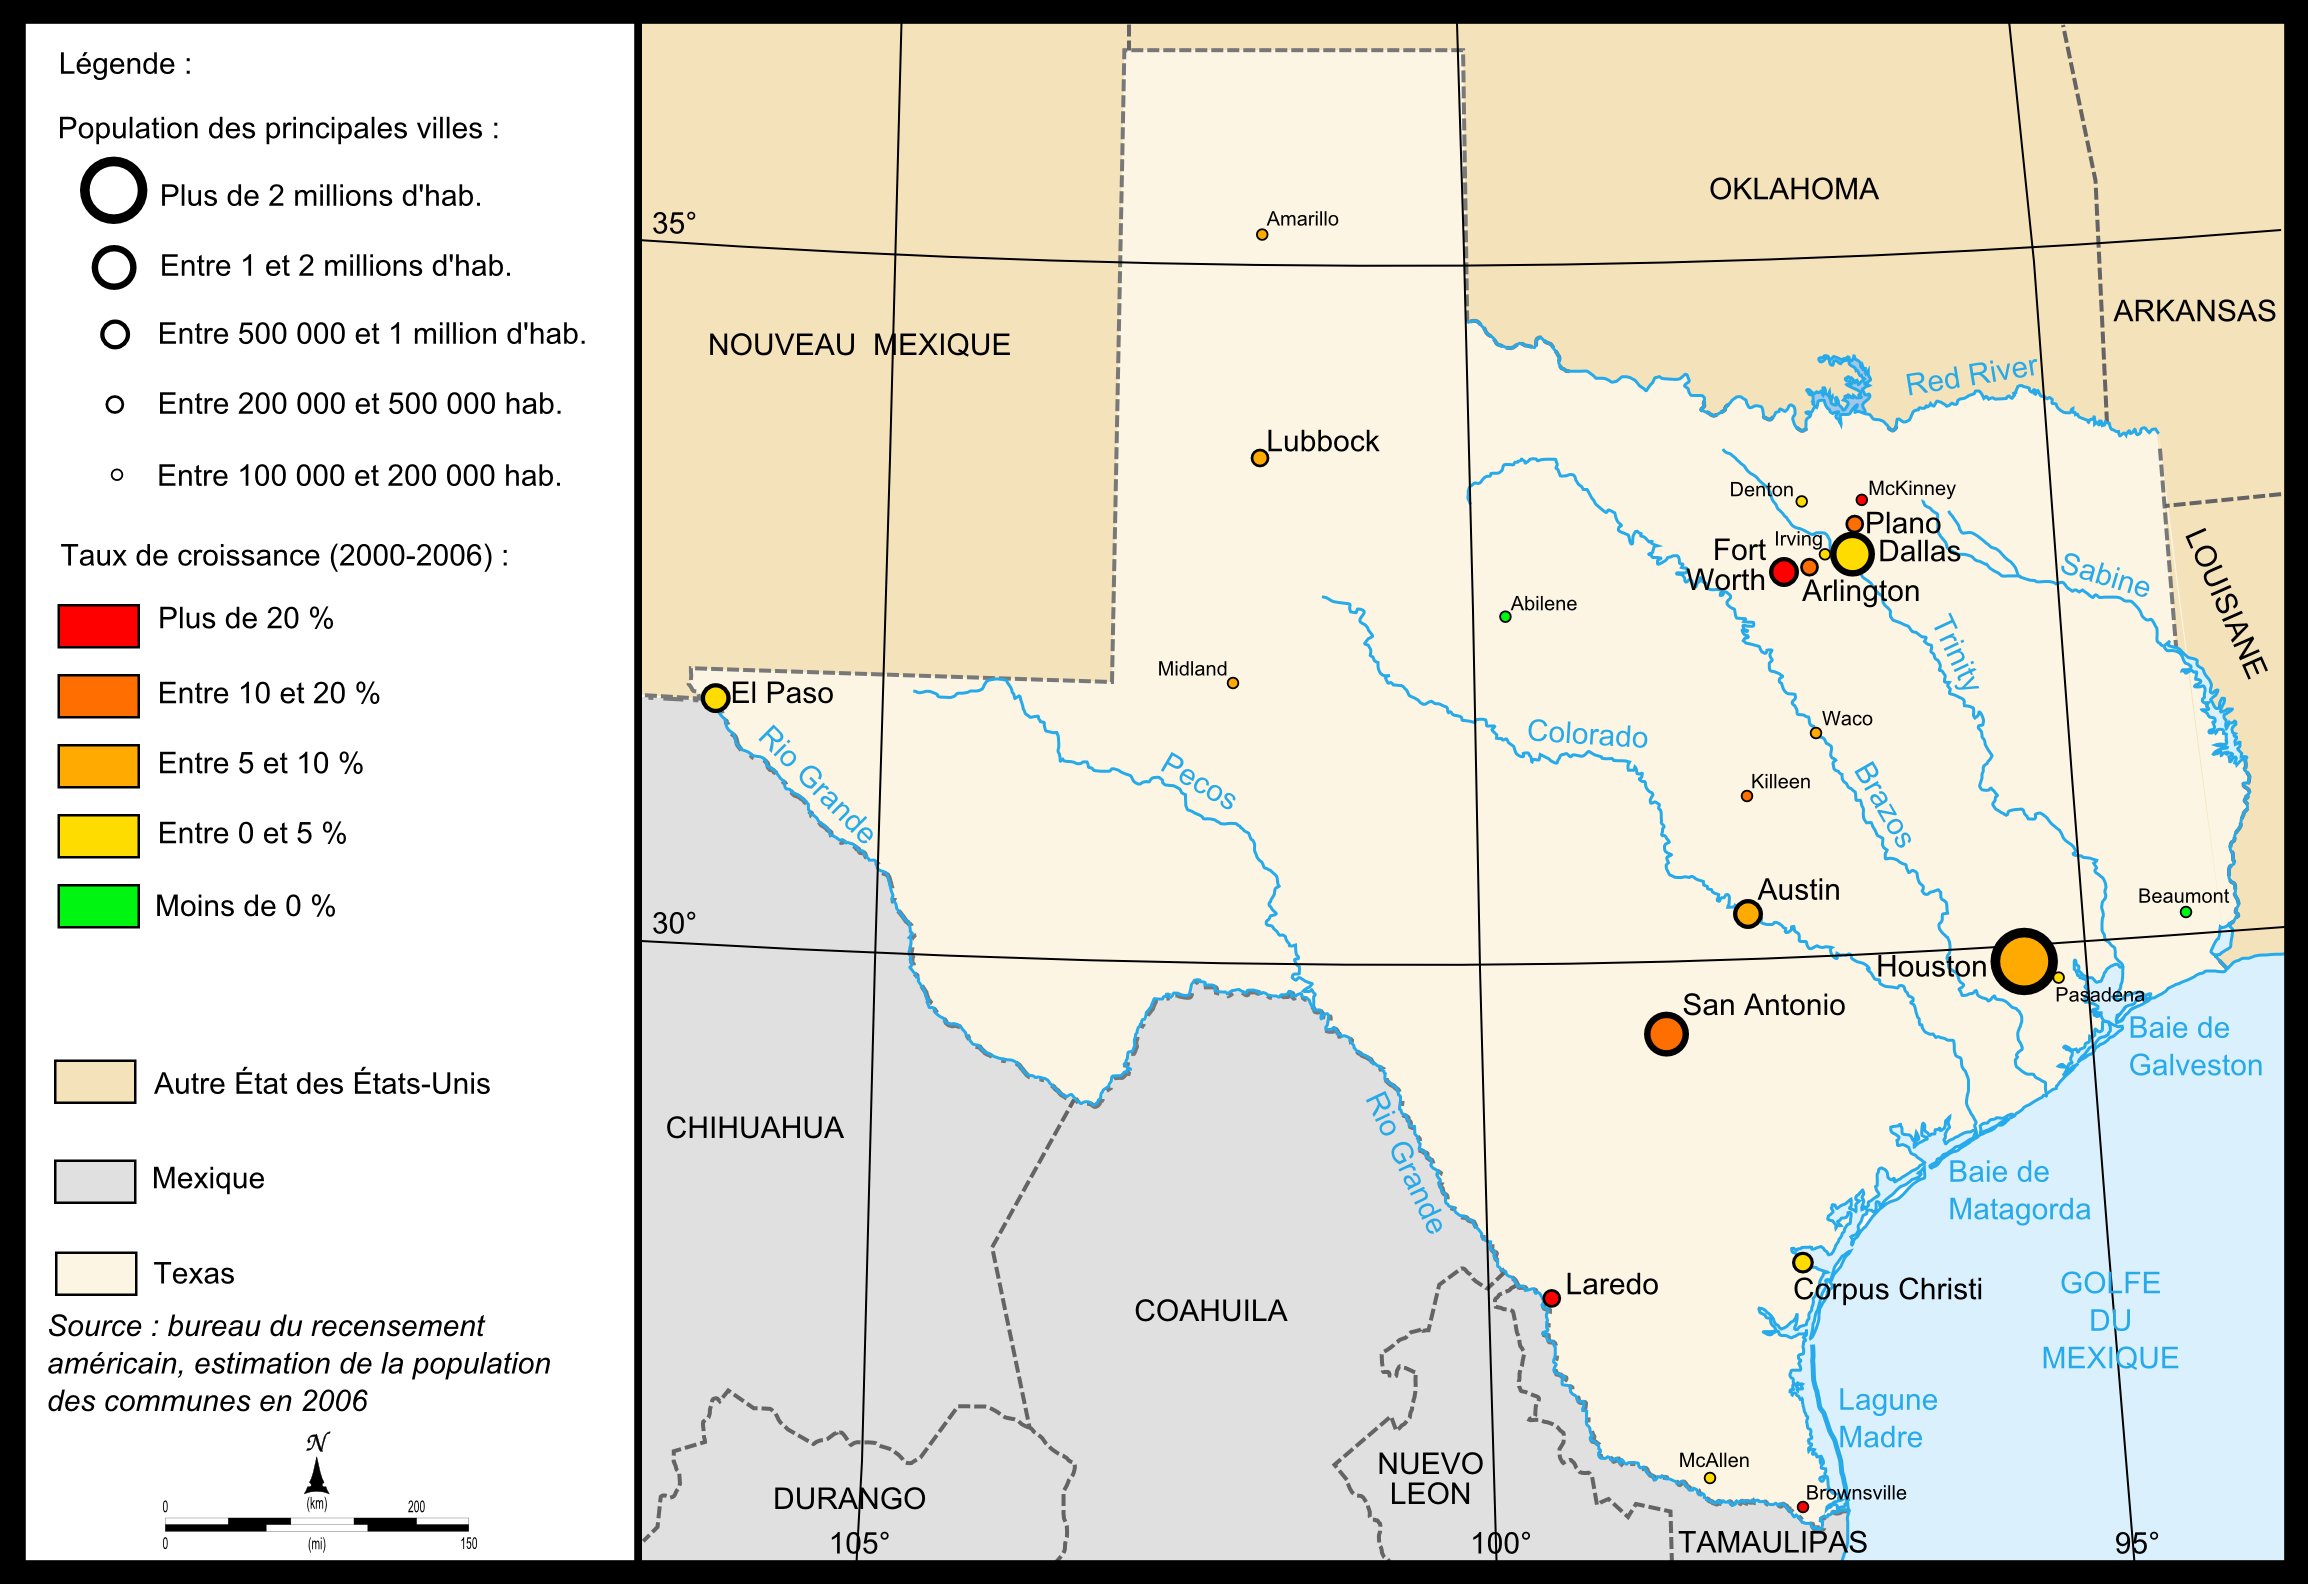 Map Of Texas Cities.File Map Of Texas Cities Png Wikimedia Commons